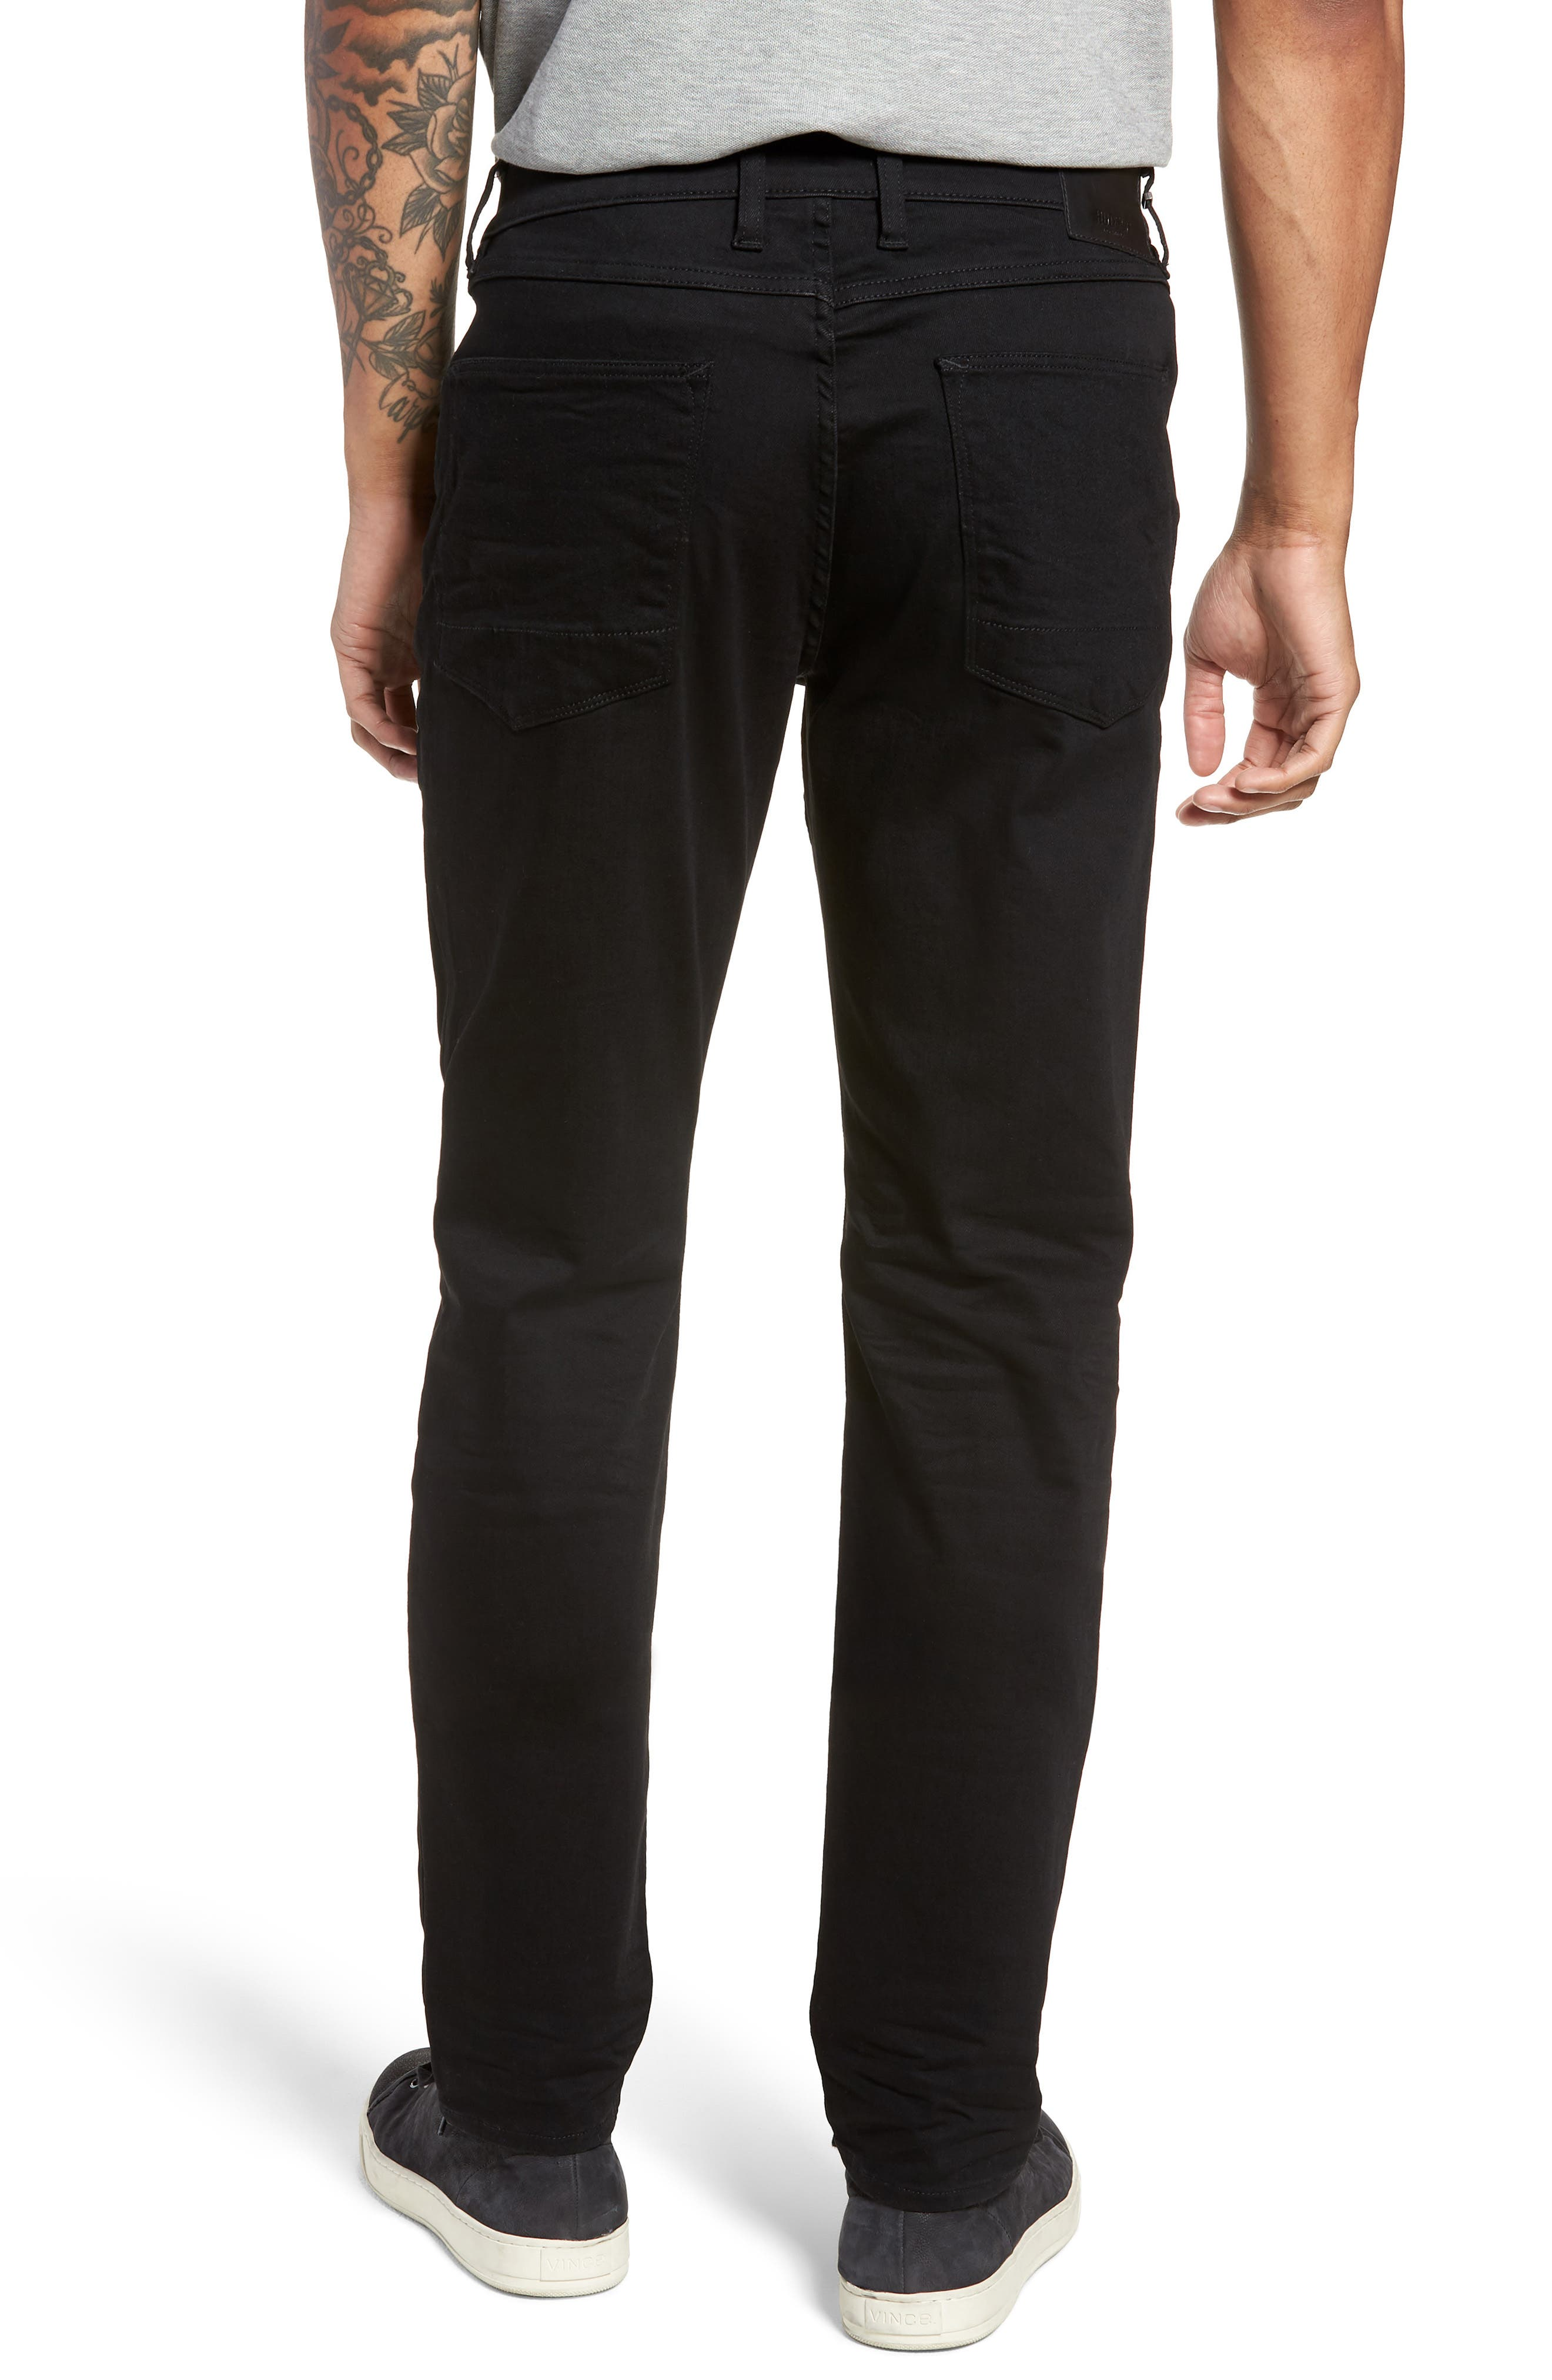 Sartor Slouchy Skinny Fit Jeans,                             Alternate thumbnail 2, color,                             001